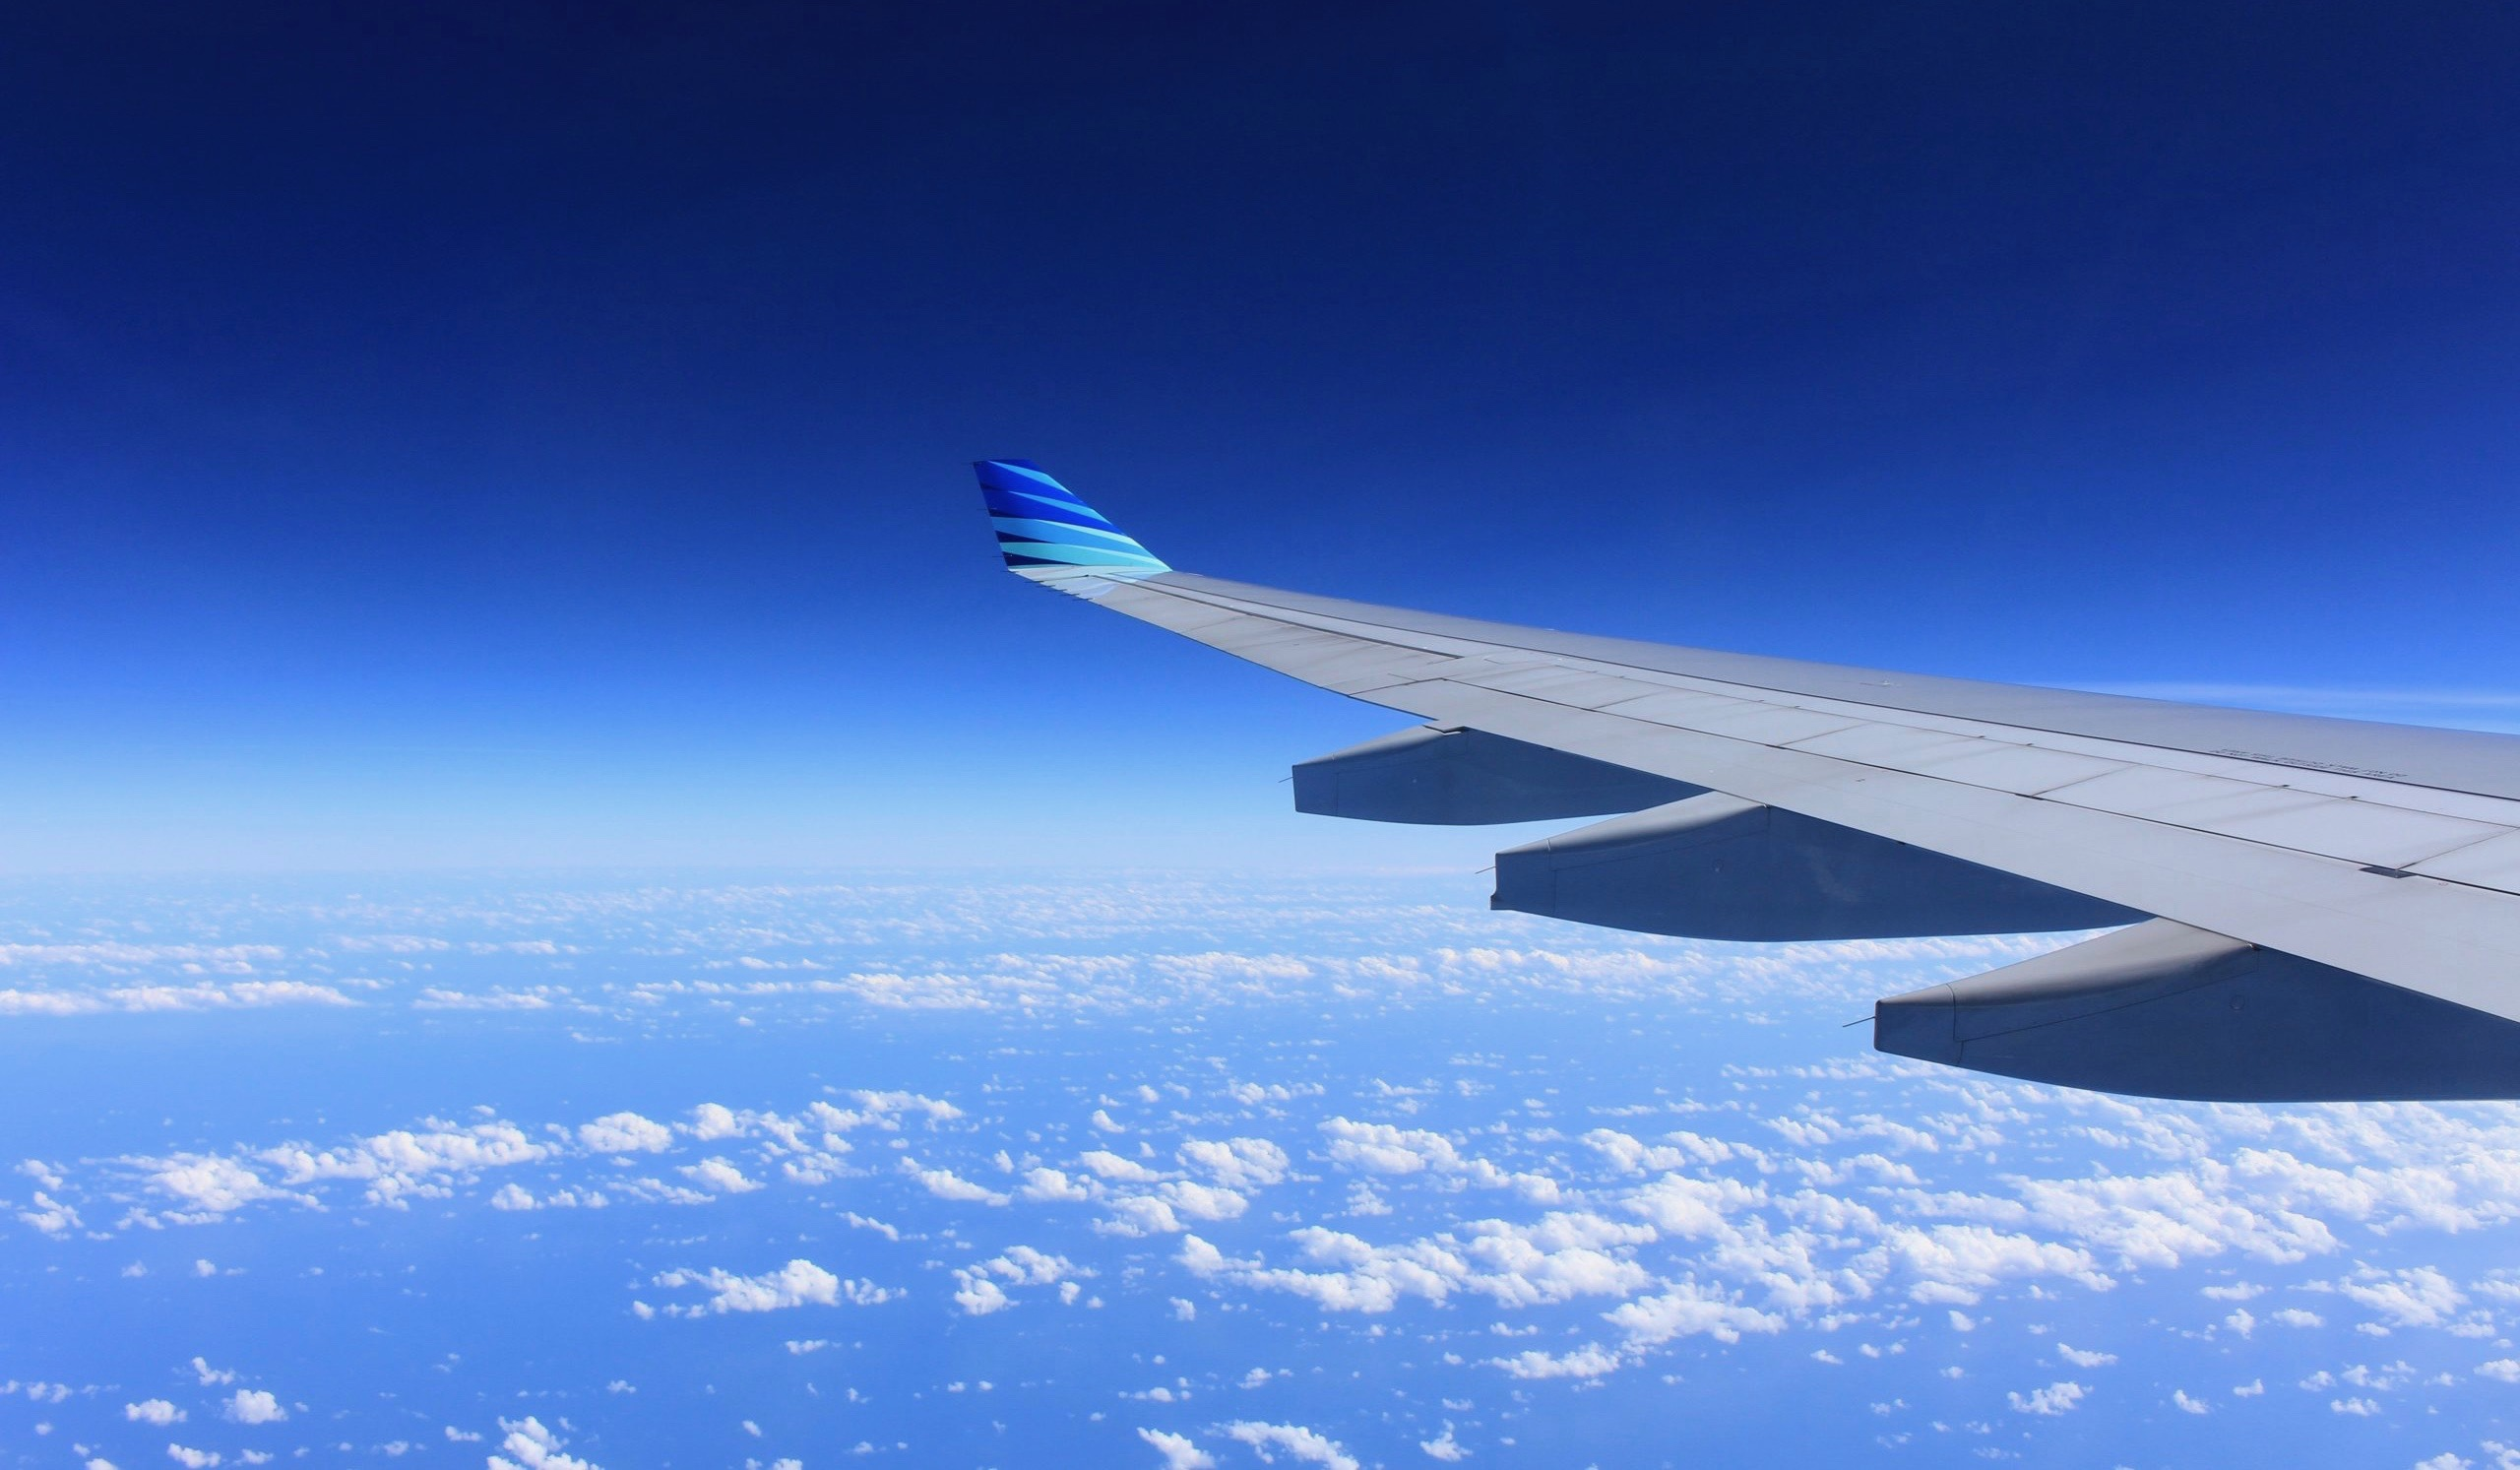 airplane wing in blue sky